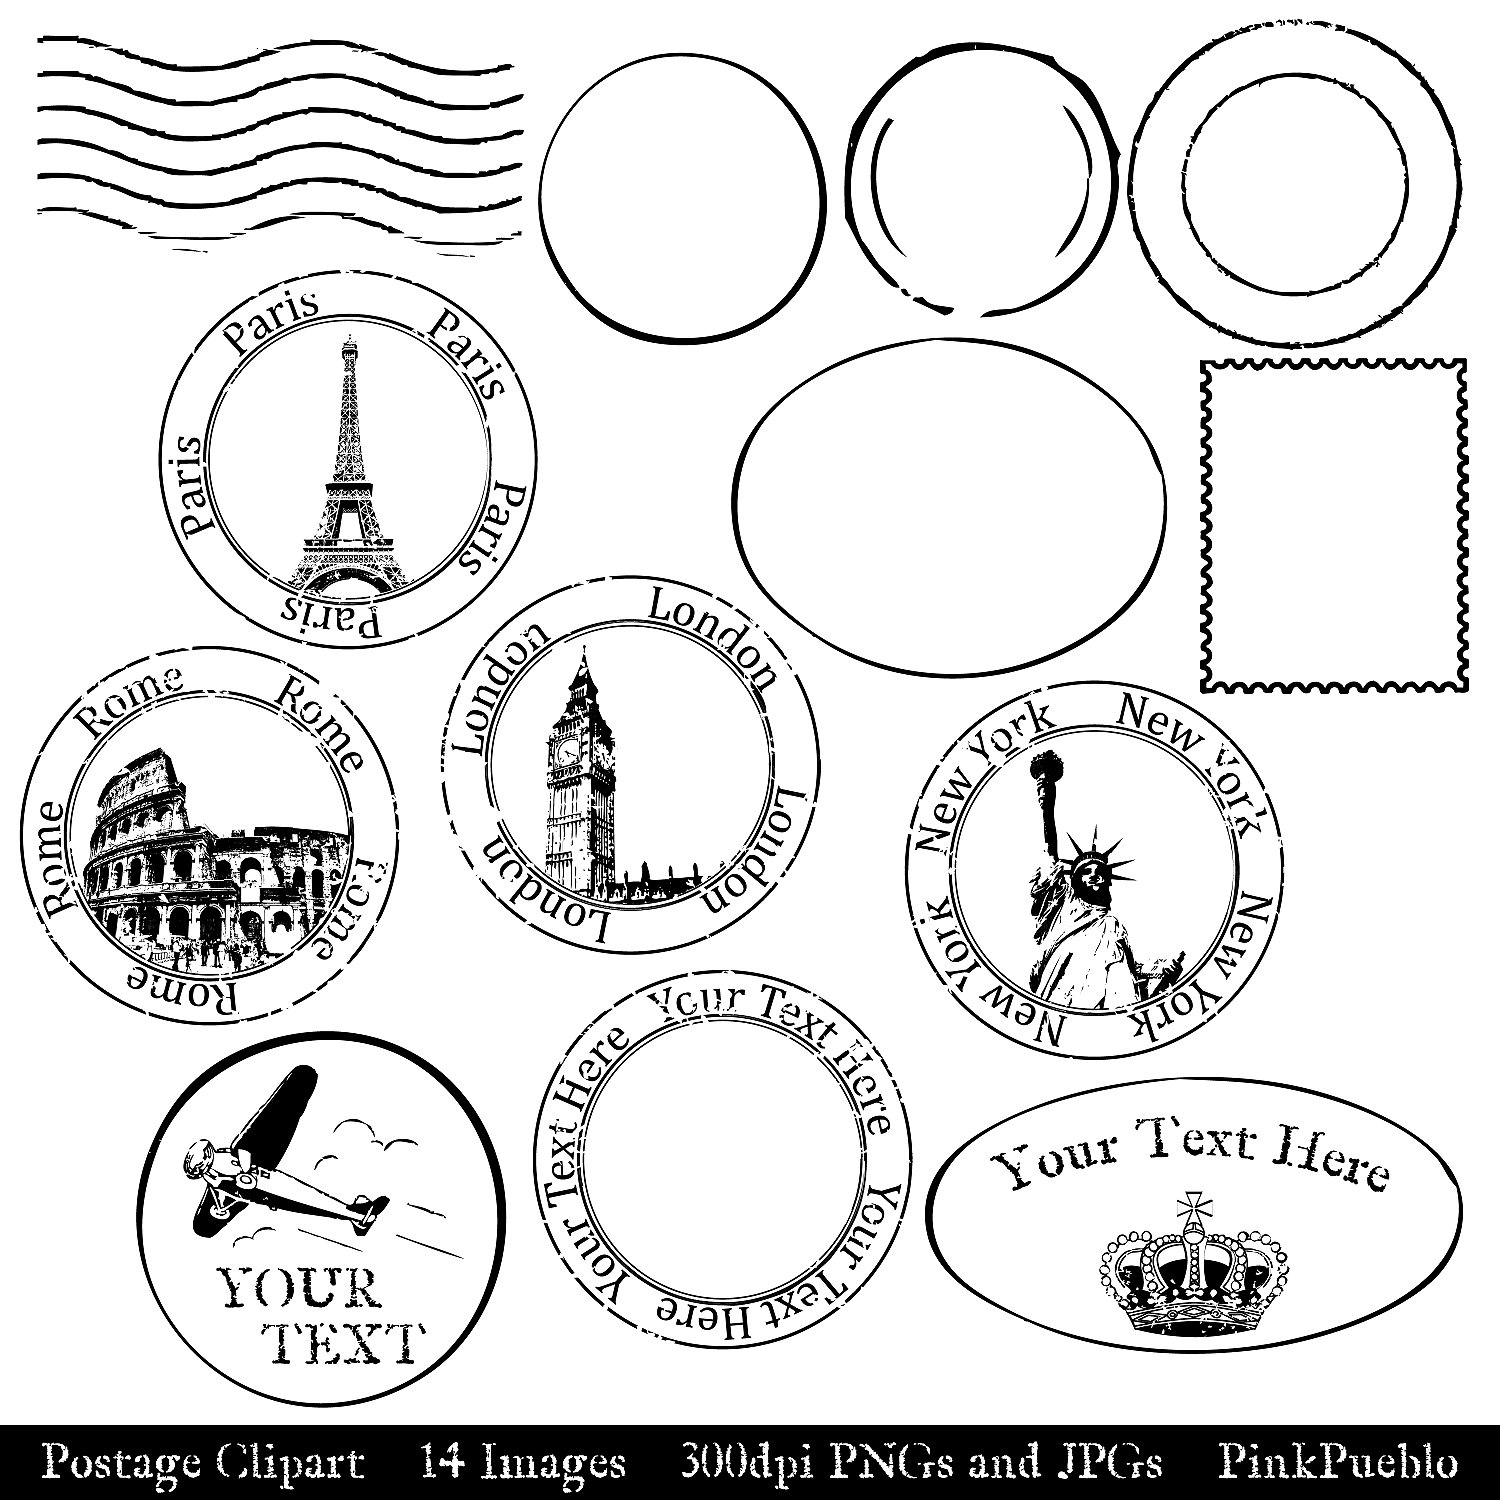 Free Postage Cliparts Download Free Clip Art Free Clip Art On Clipart Library